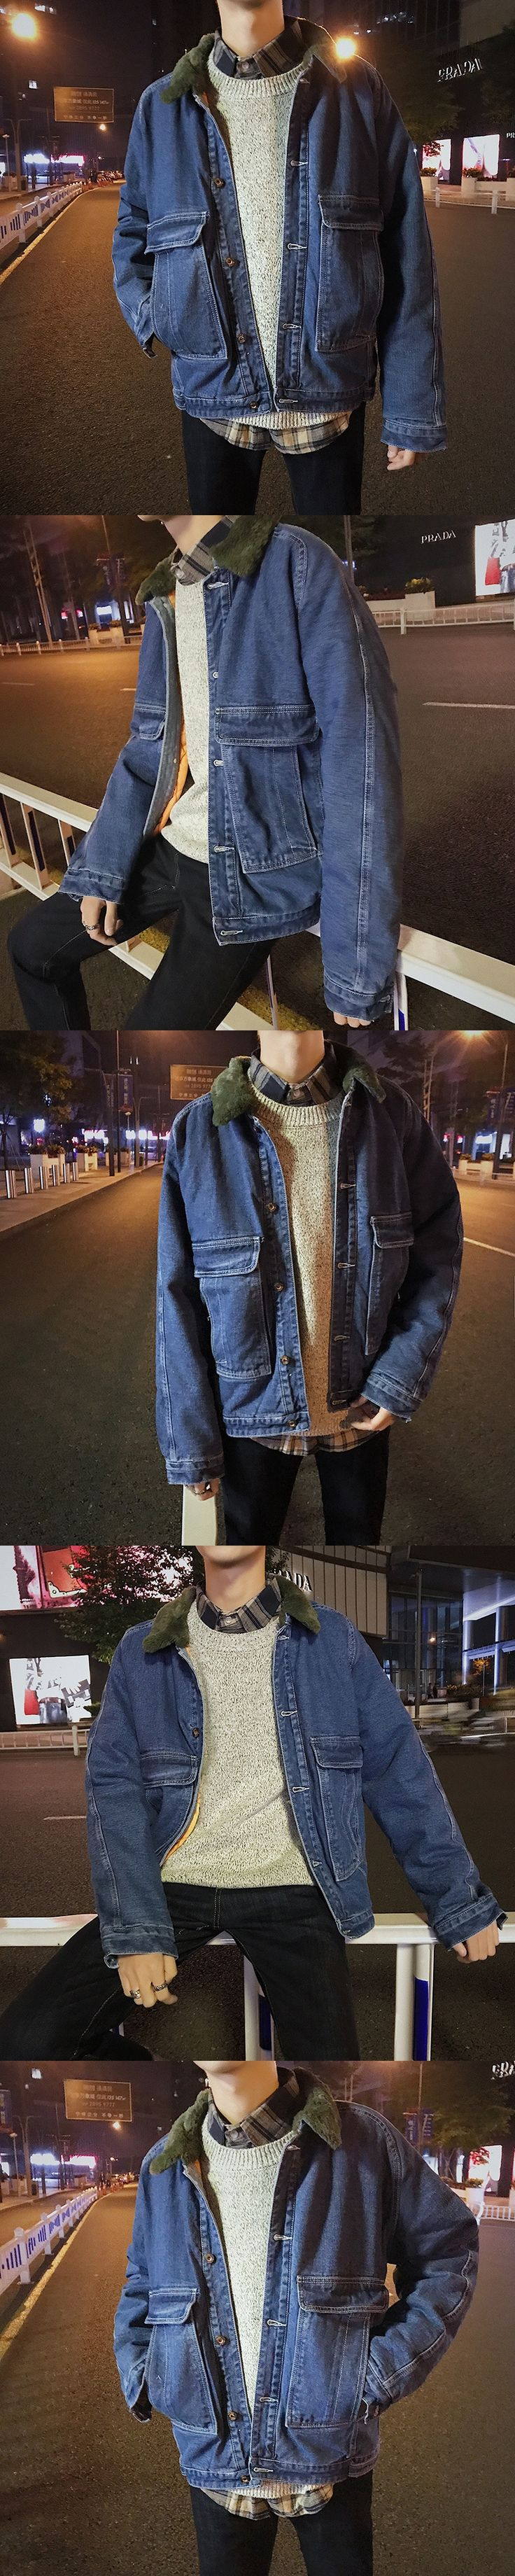 2017 Winter New Men's Fur Collar Thicken Fleece Denim Snow Jackets Loose In Warm Casual High Quality Blue Male Coats S-2xl